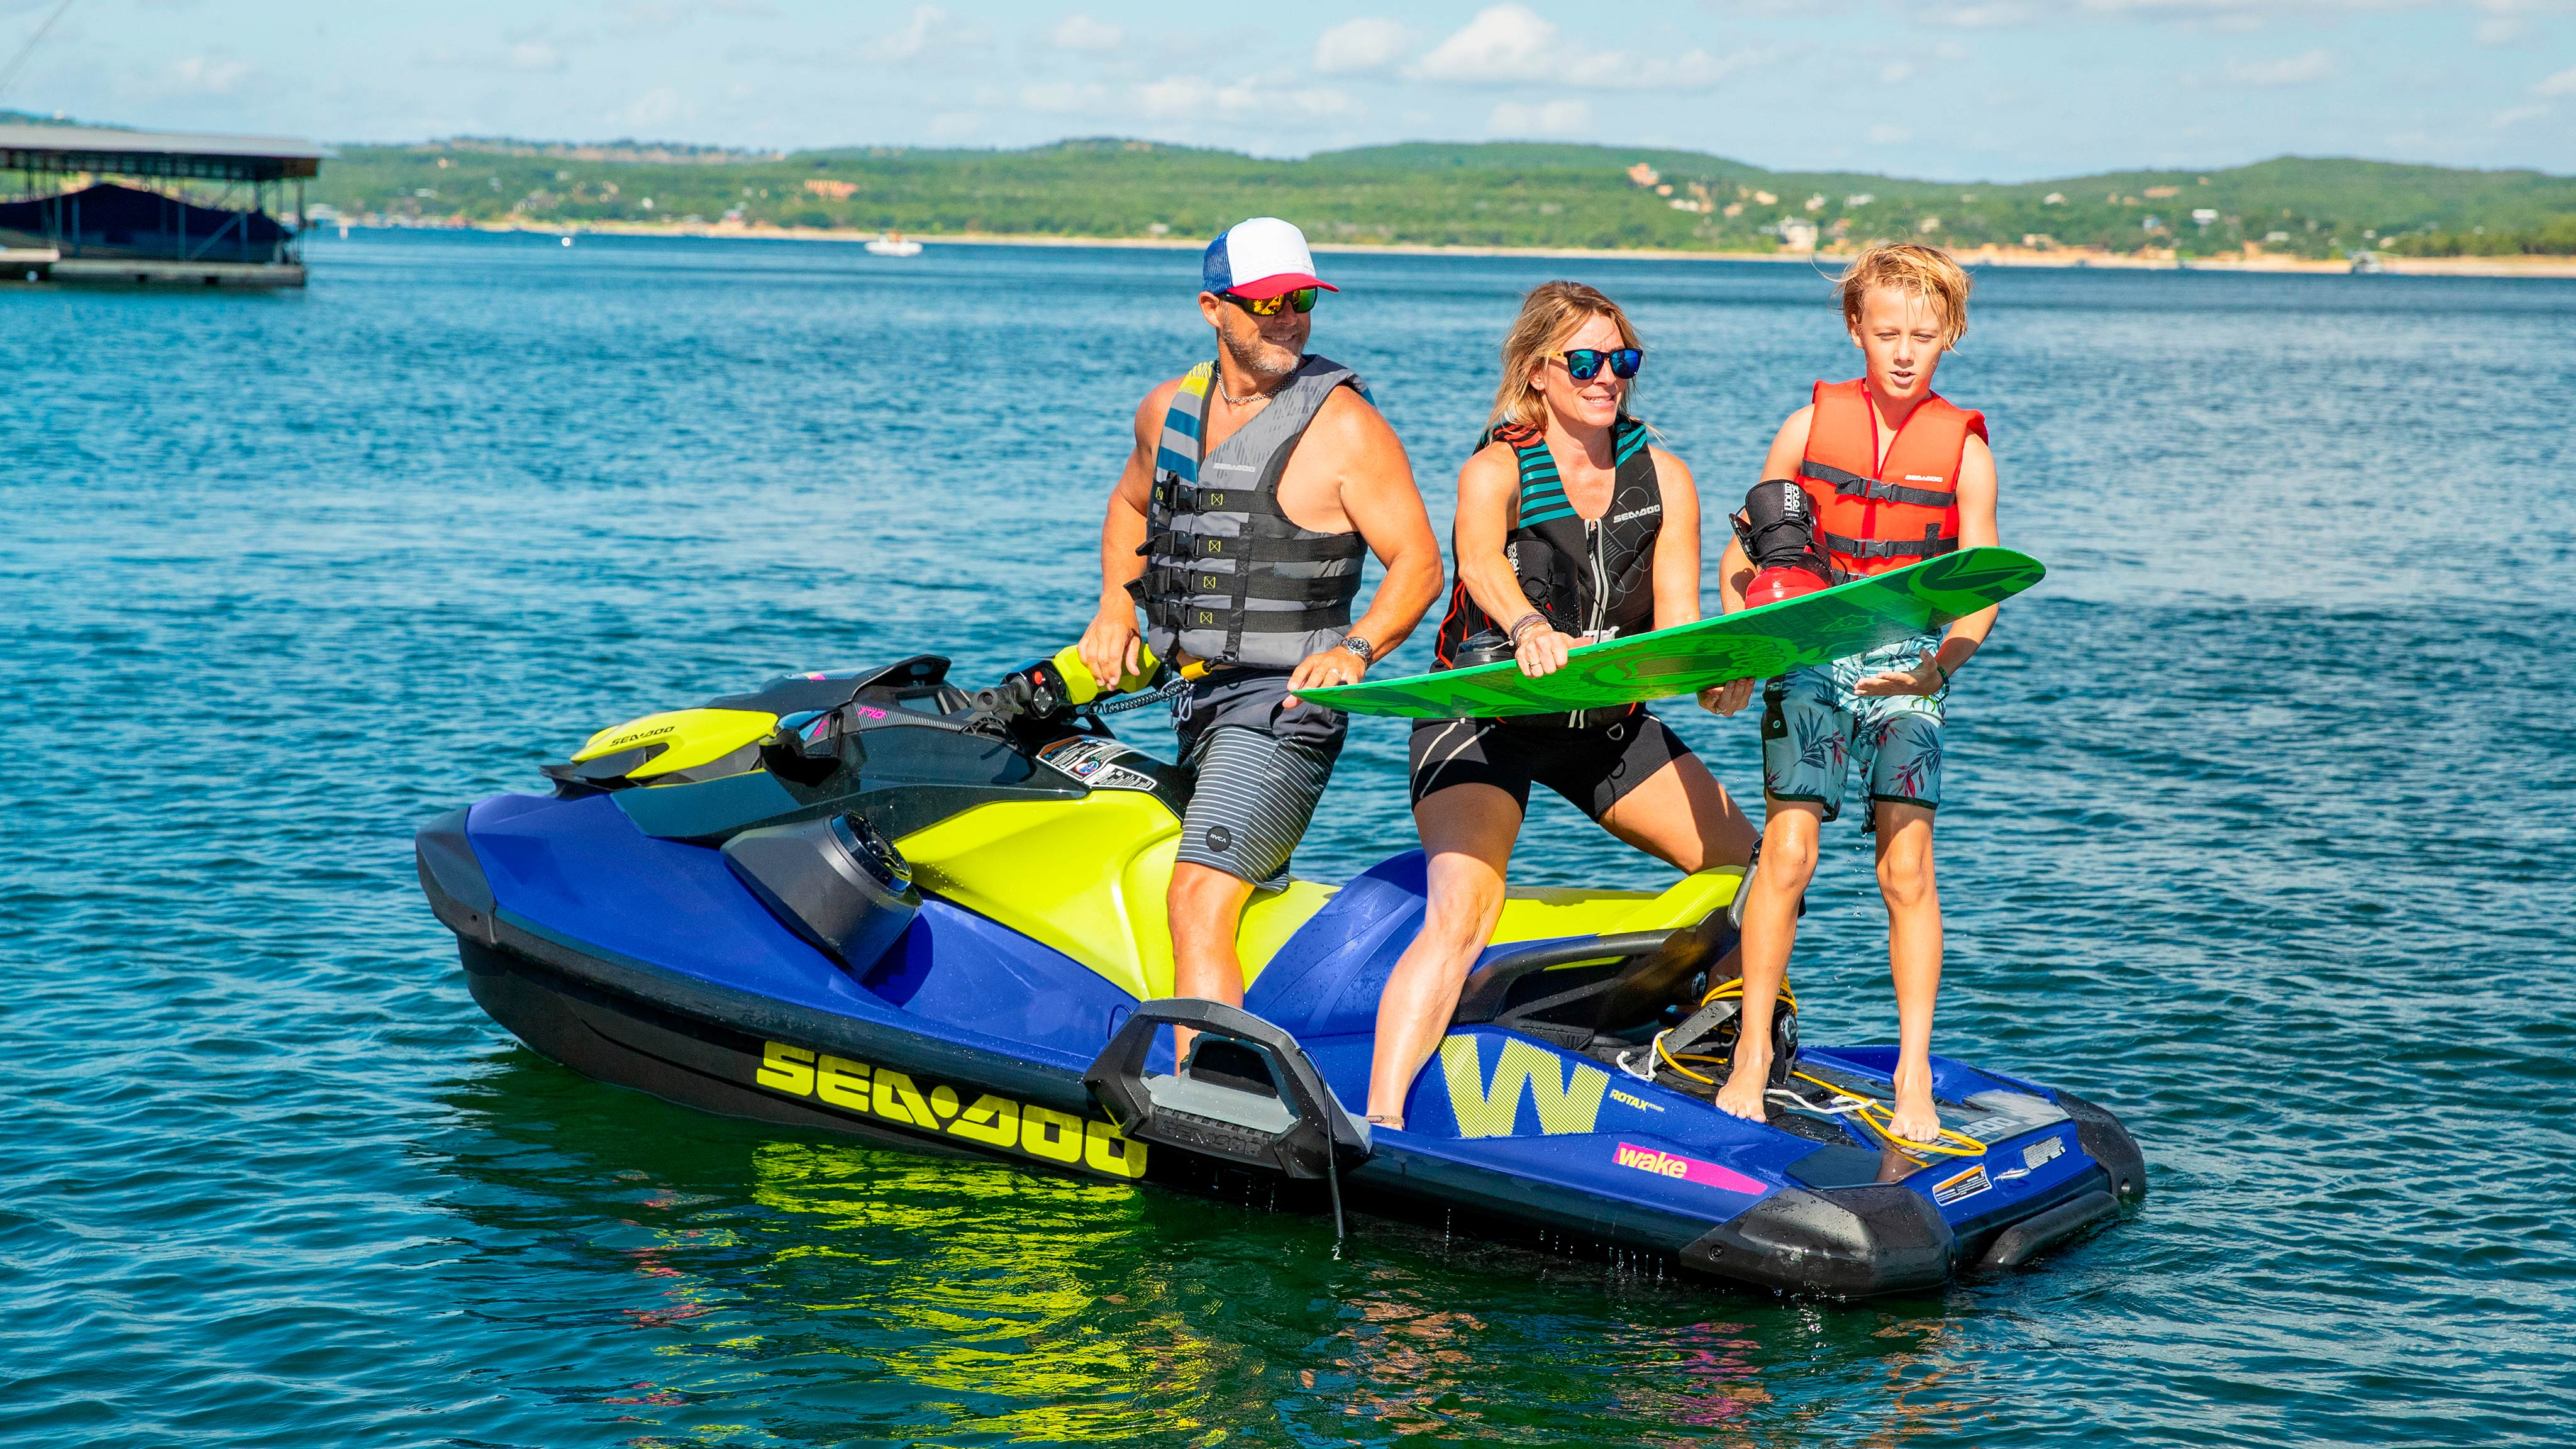 Family preparing a wakeboard ride on Sea-Doo Wake